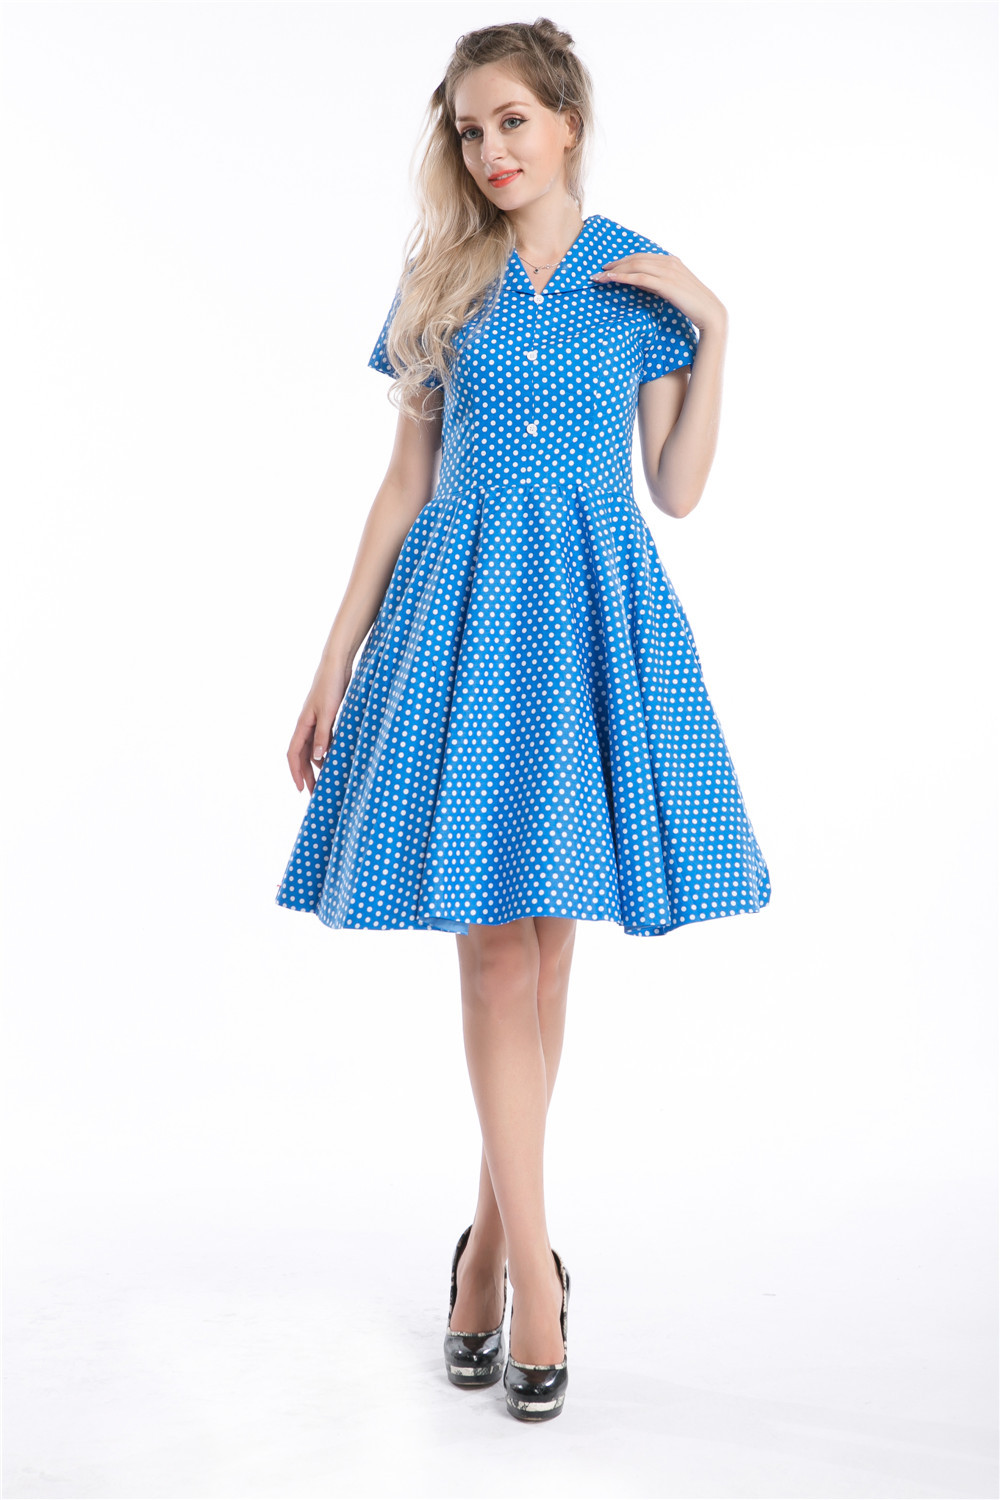 Hot sale sexy woman 50s 60s vintage swing dresses solid white polka